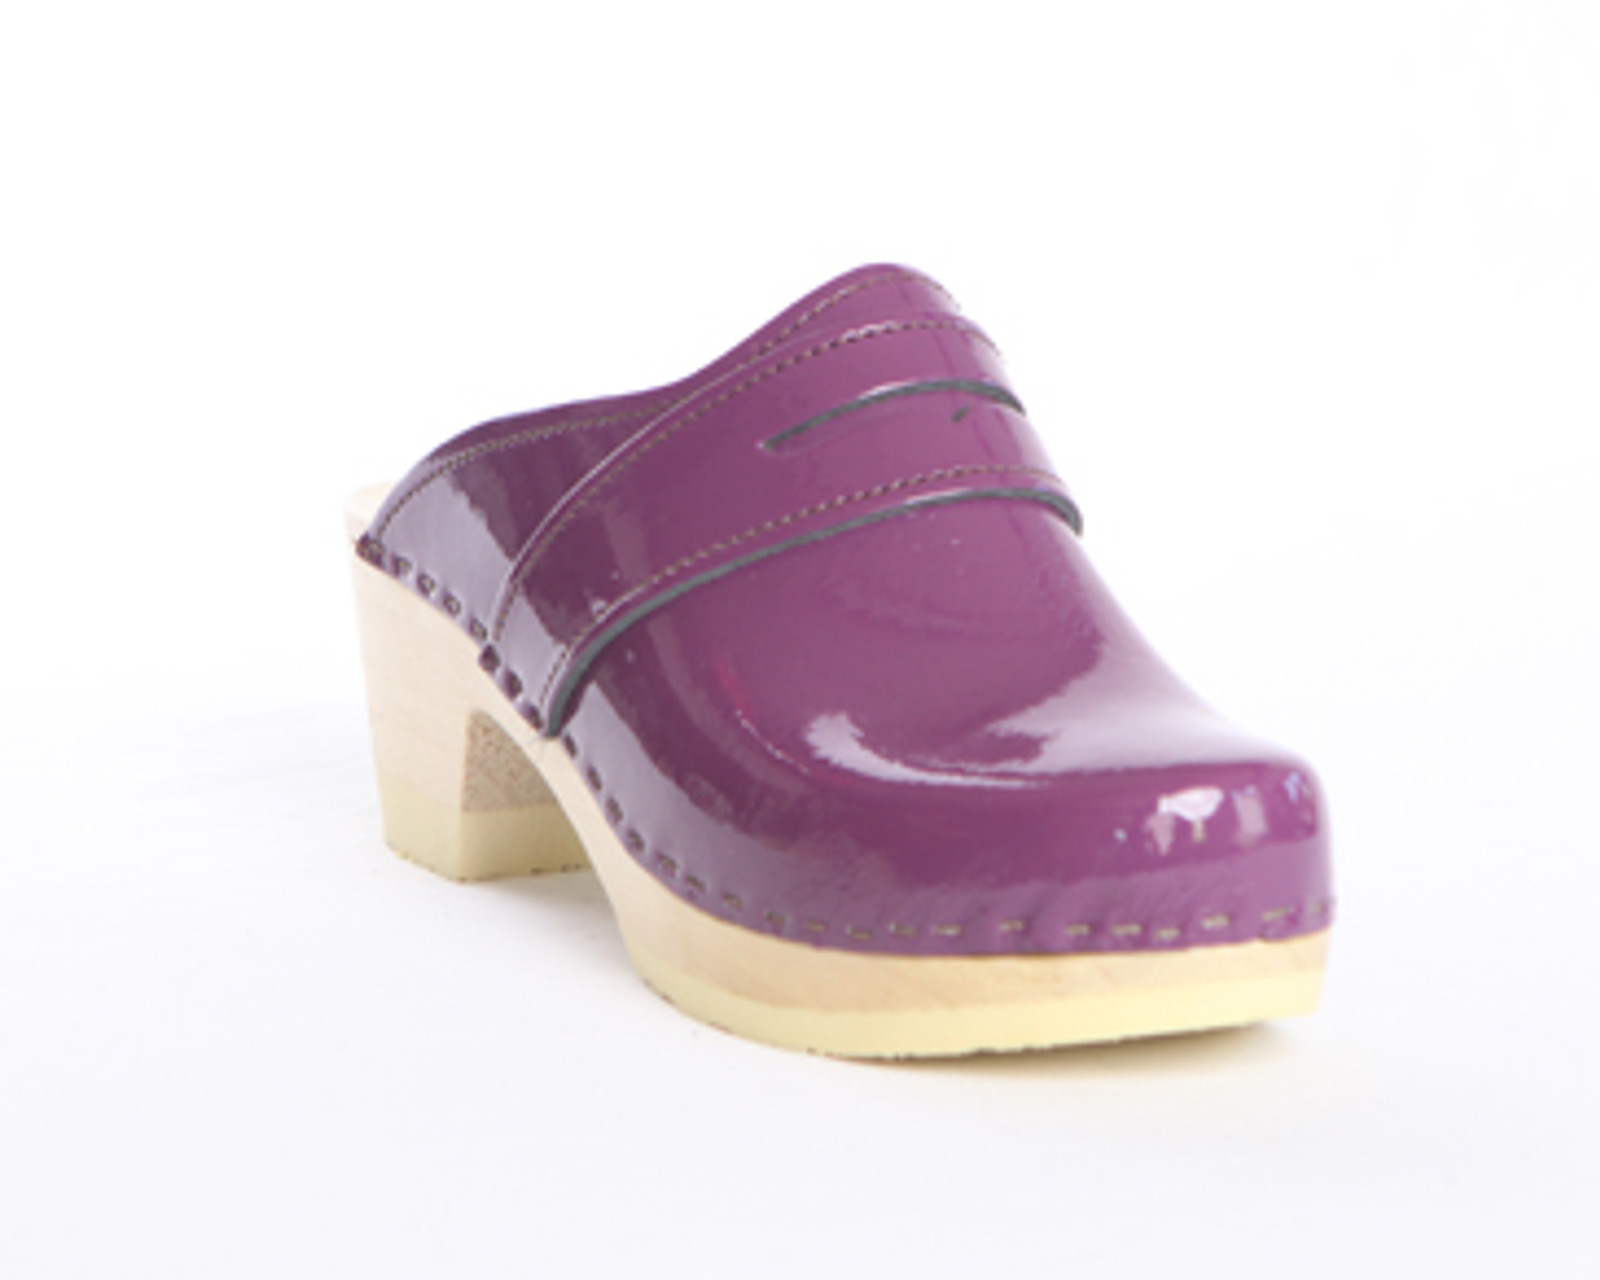 Penny Loafer Clogs - Bendable Mid Heels